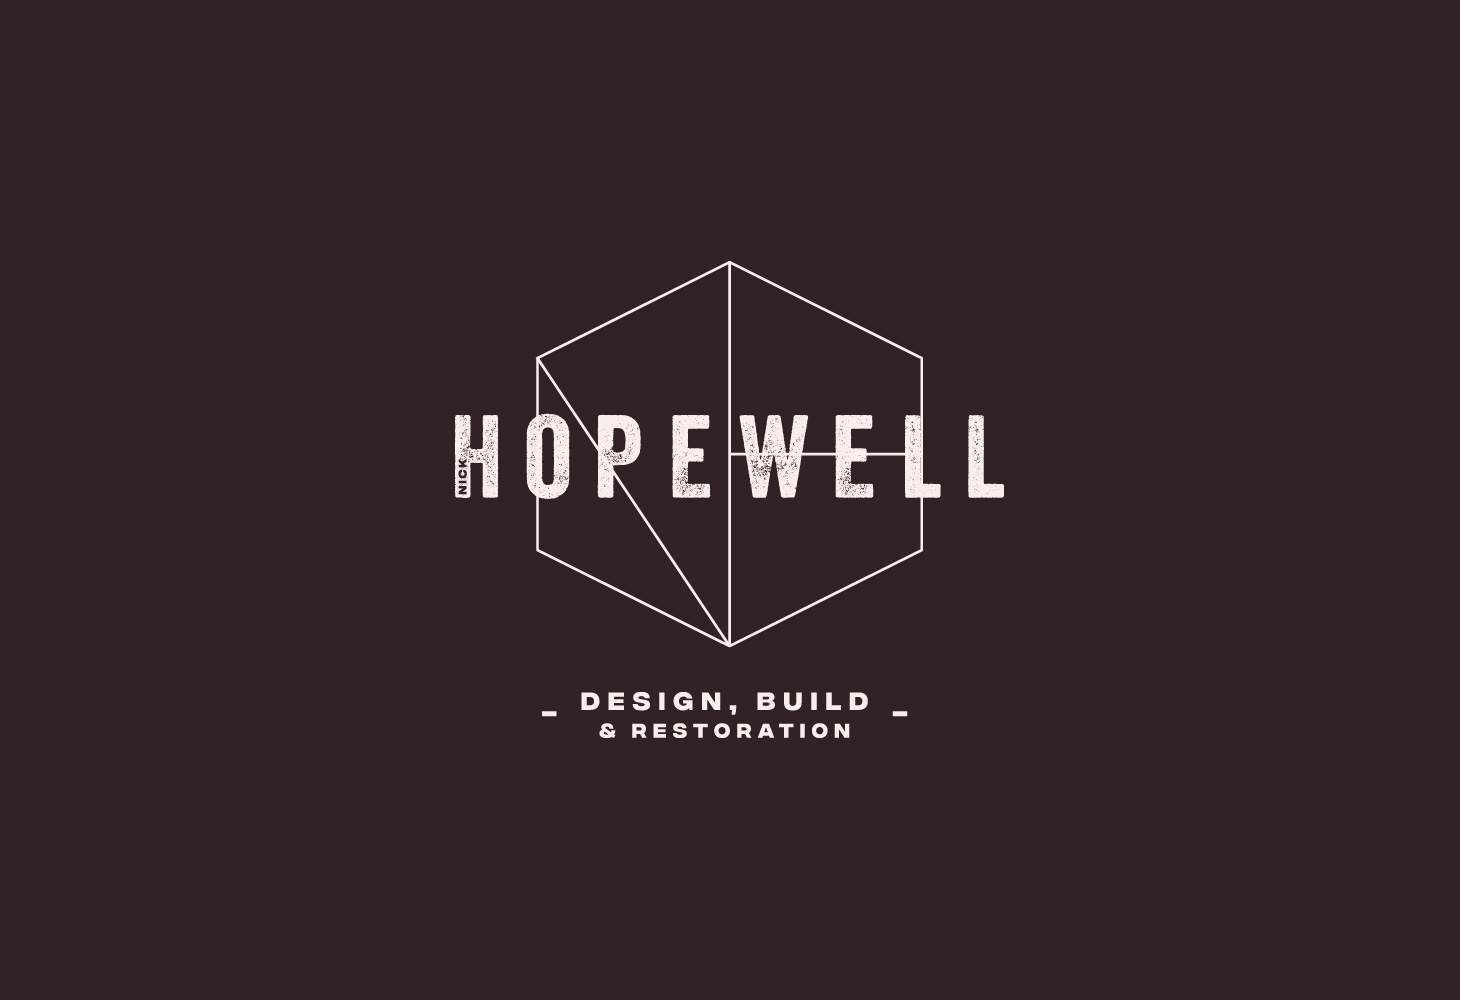 Hopewell - Logomark - mark, type and strap